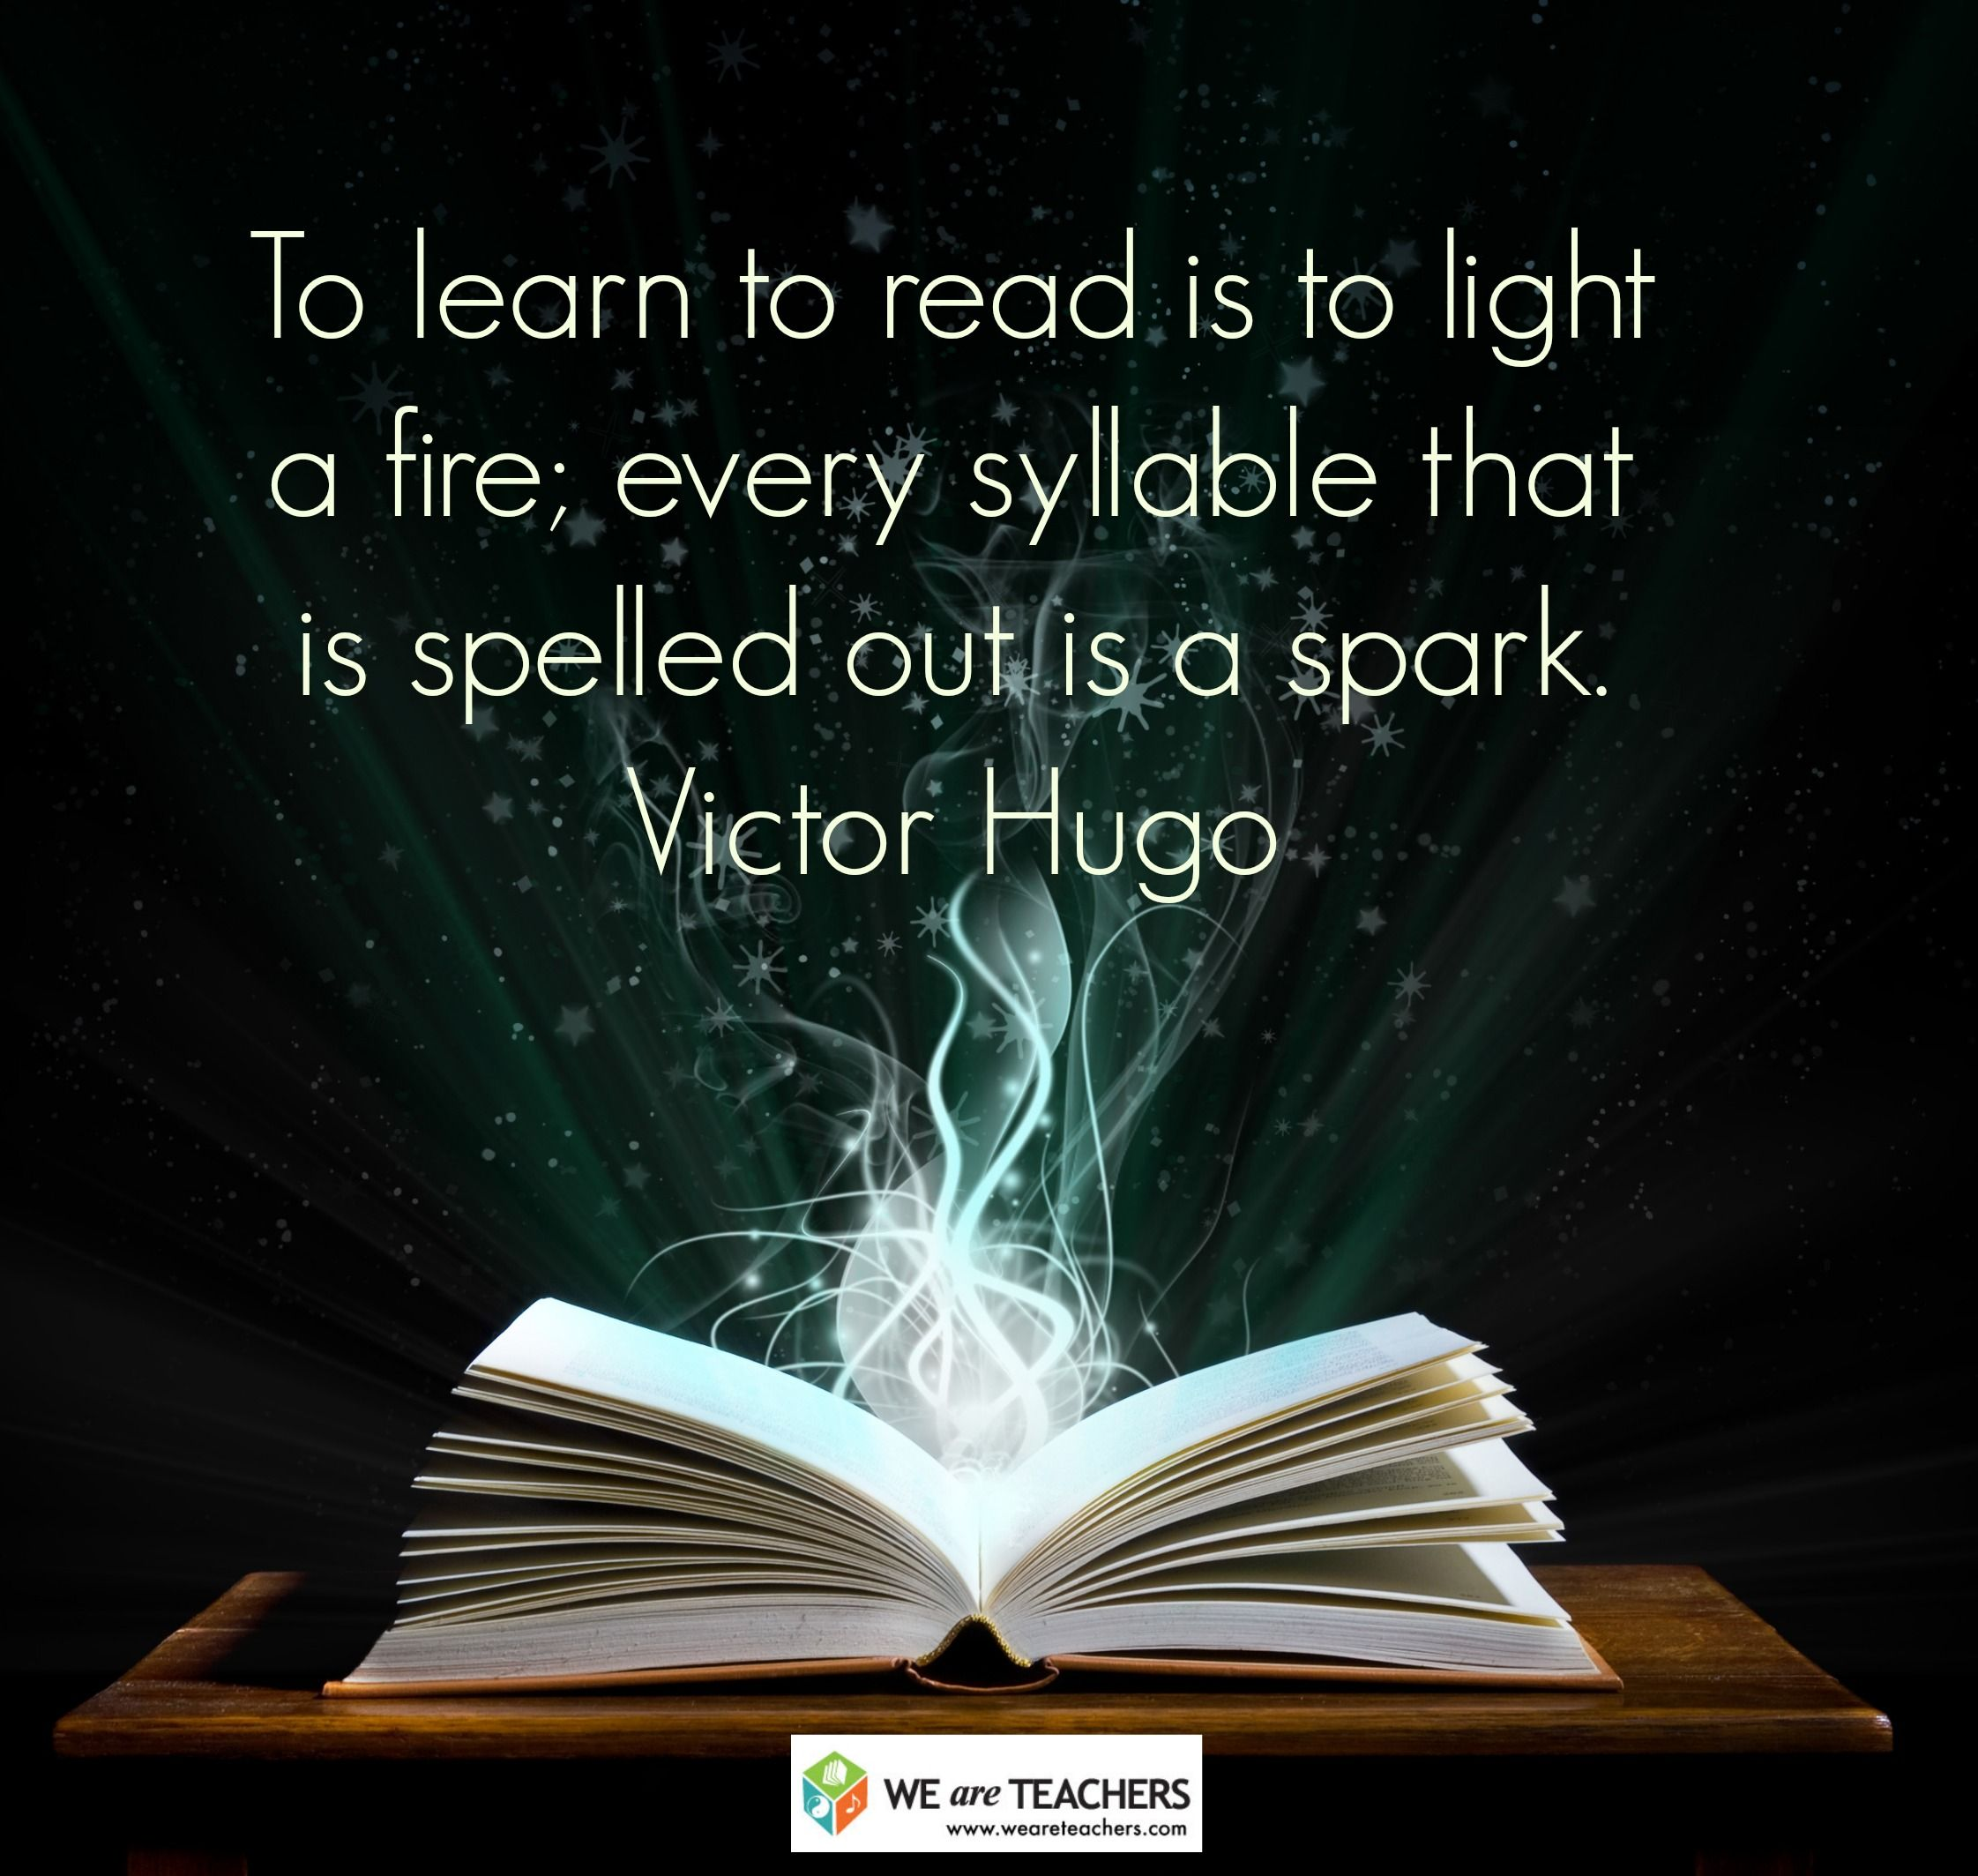 To Learn To Read Is To Light A Fire Teaching Inspiration Teacher Quotes Inspirational Education Quotes